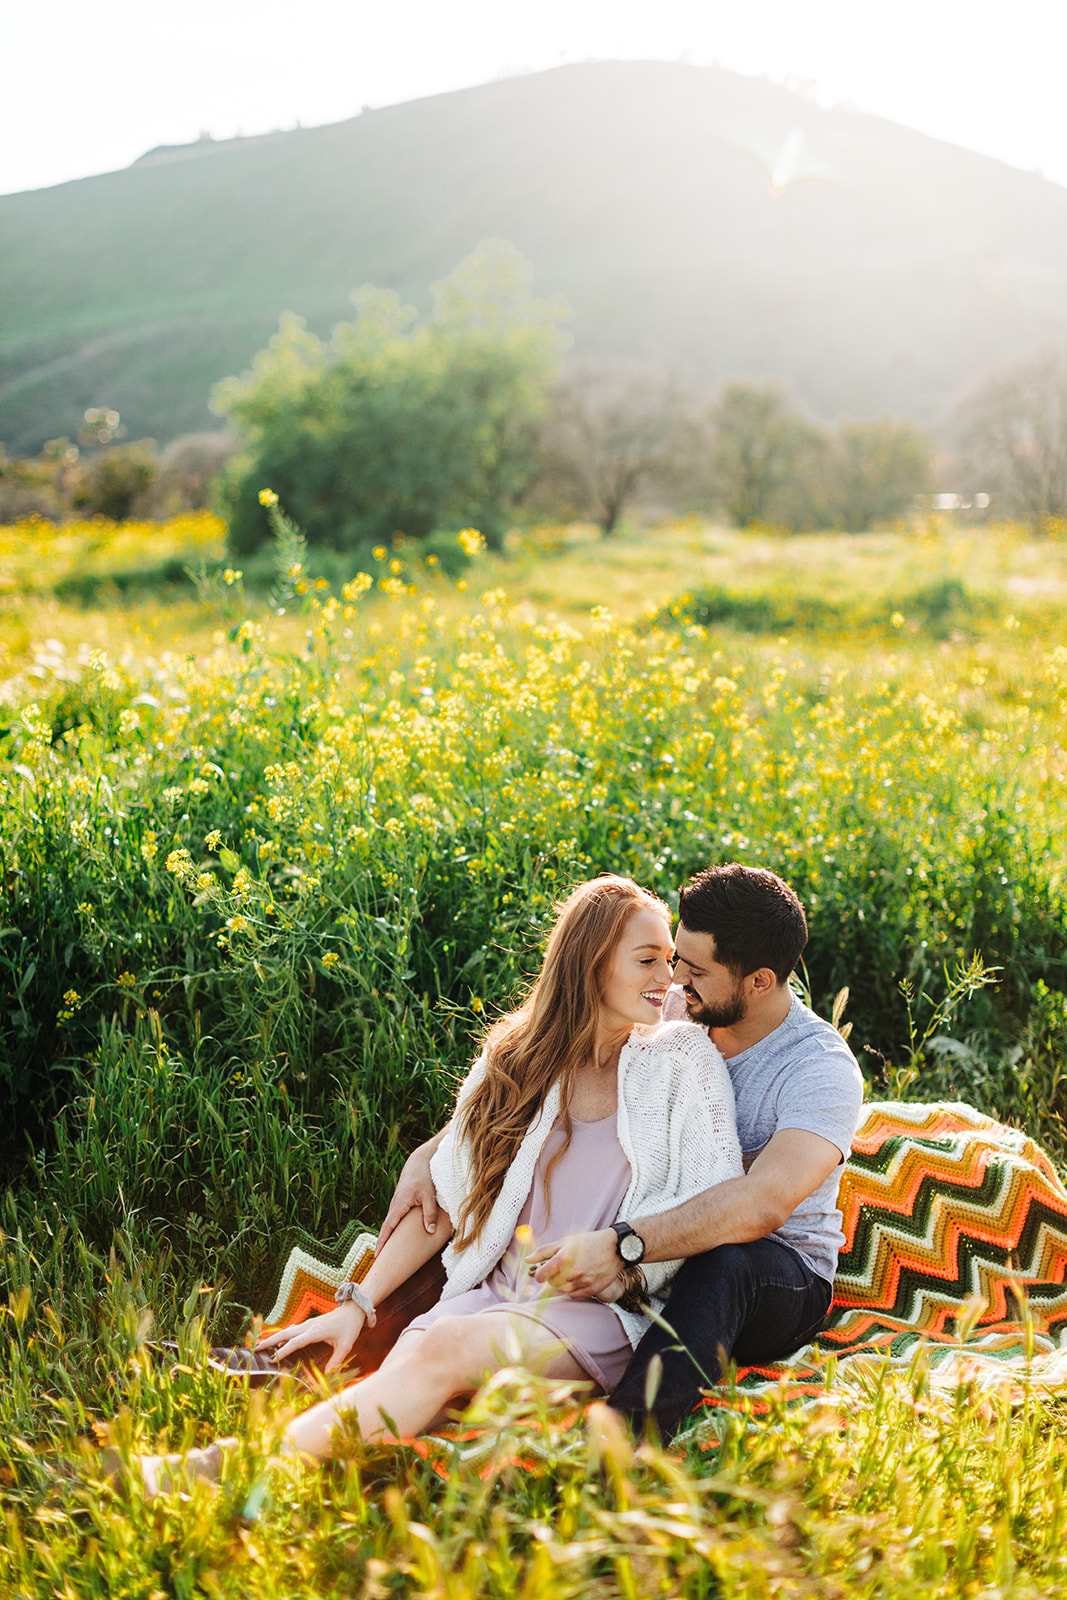 Katie-Yovin_Richard_Superbloom-Engagement-Photos_Clarisse-Rae_Southern-California-Wedding-Photographer-Orange-County-Engagement-Photos-12